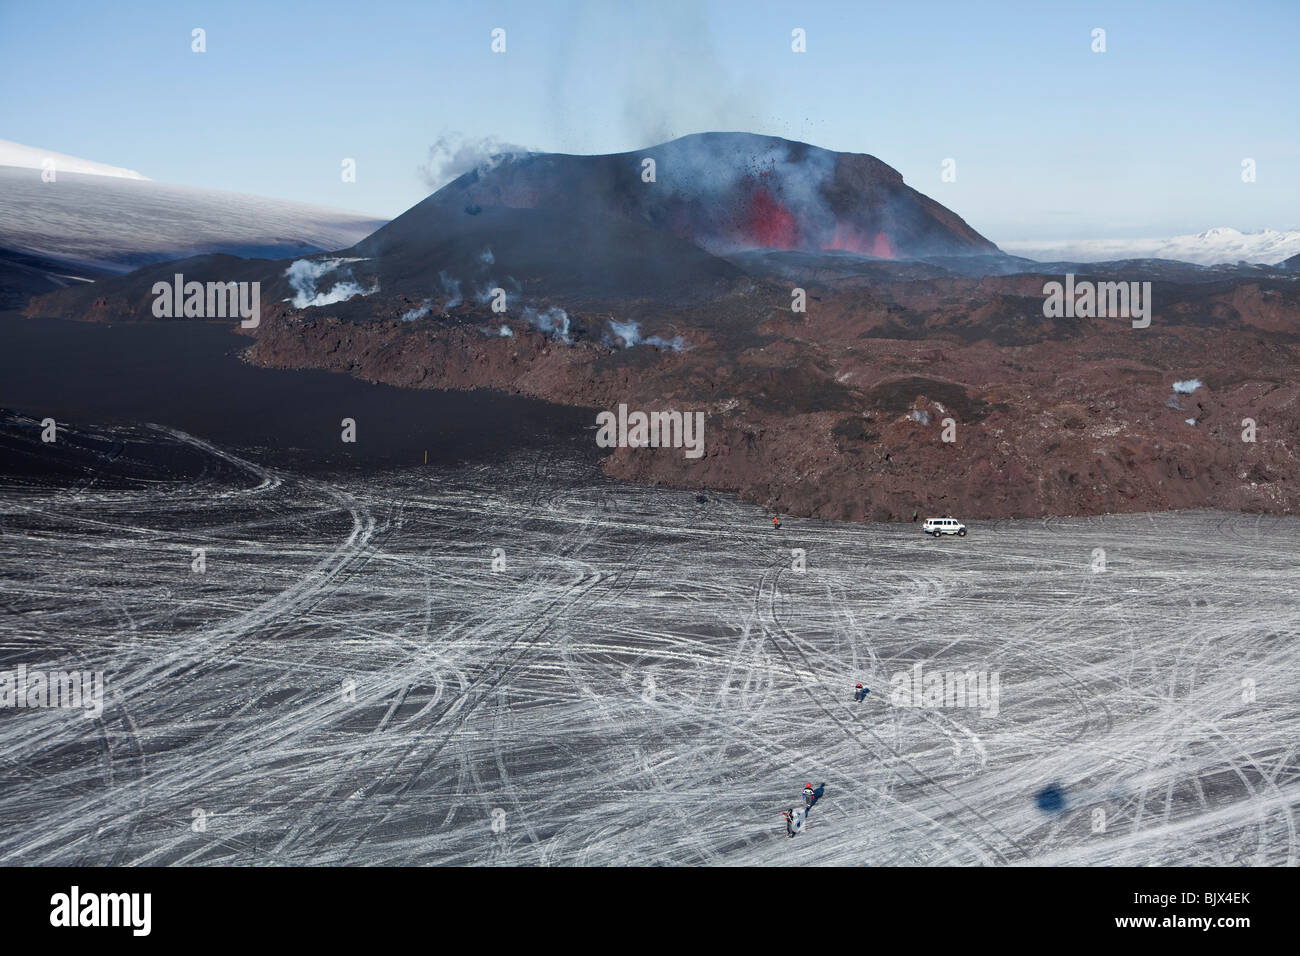 New lava from the volcanic eruption at Fimmvorduhals, in Eyjafjallajokull, Iceland - Stock Image